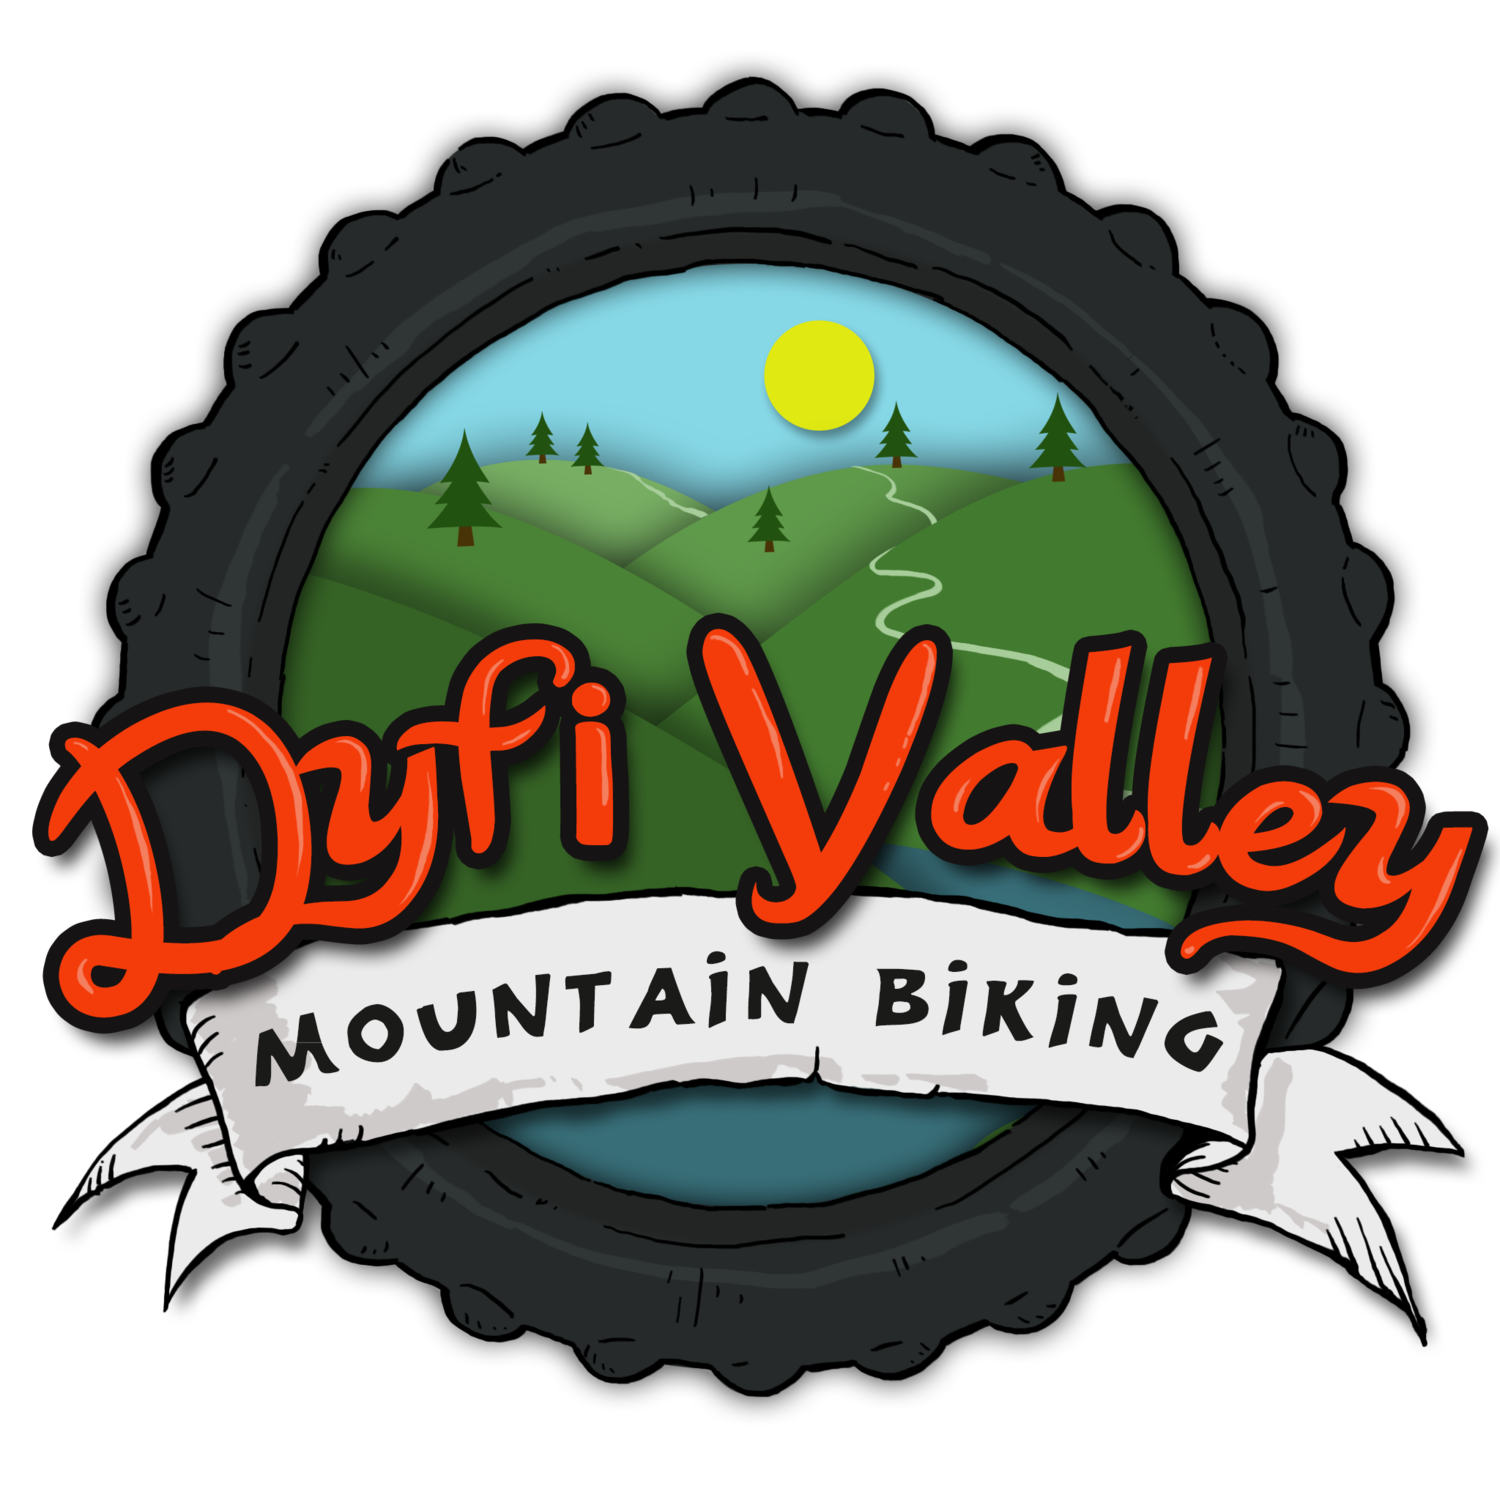 Dyfi Valley Mountain Biking